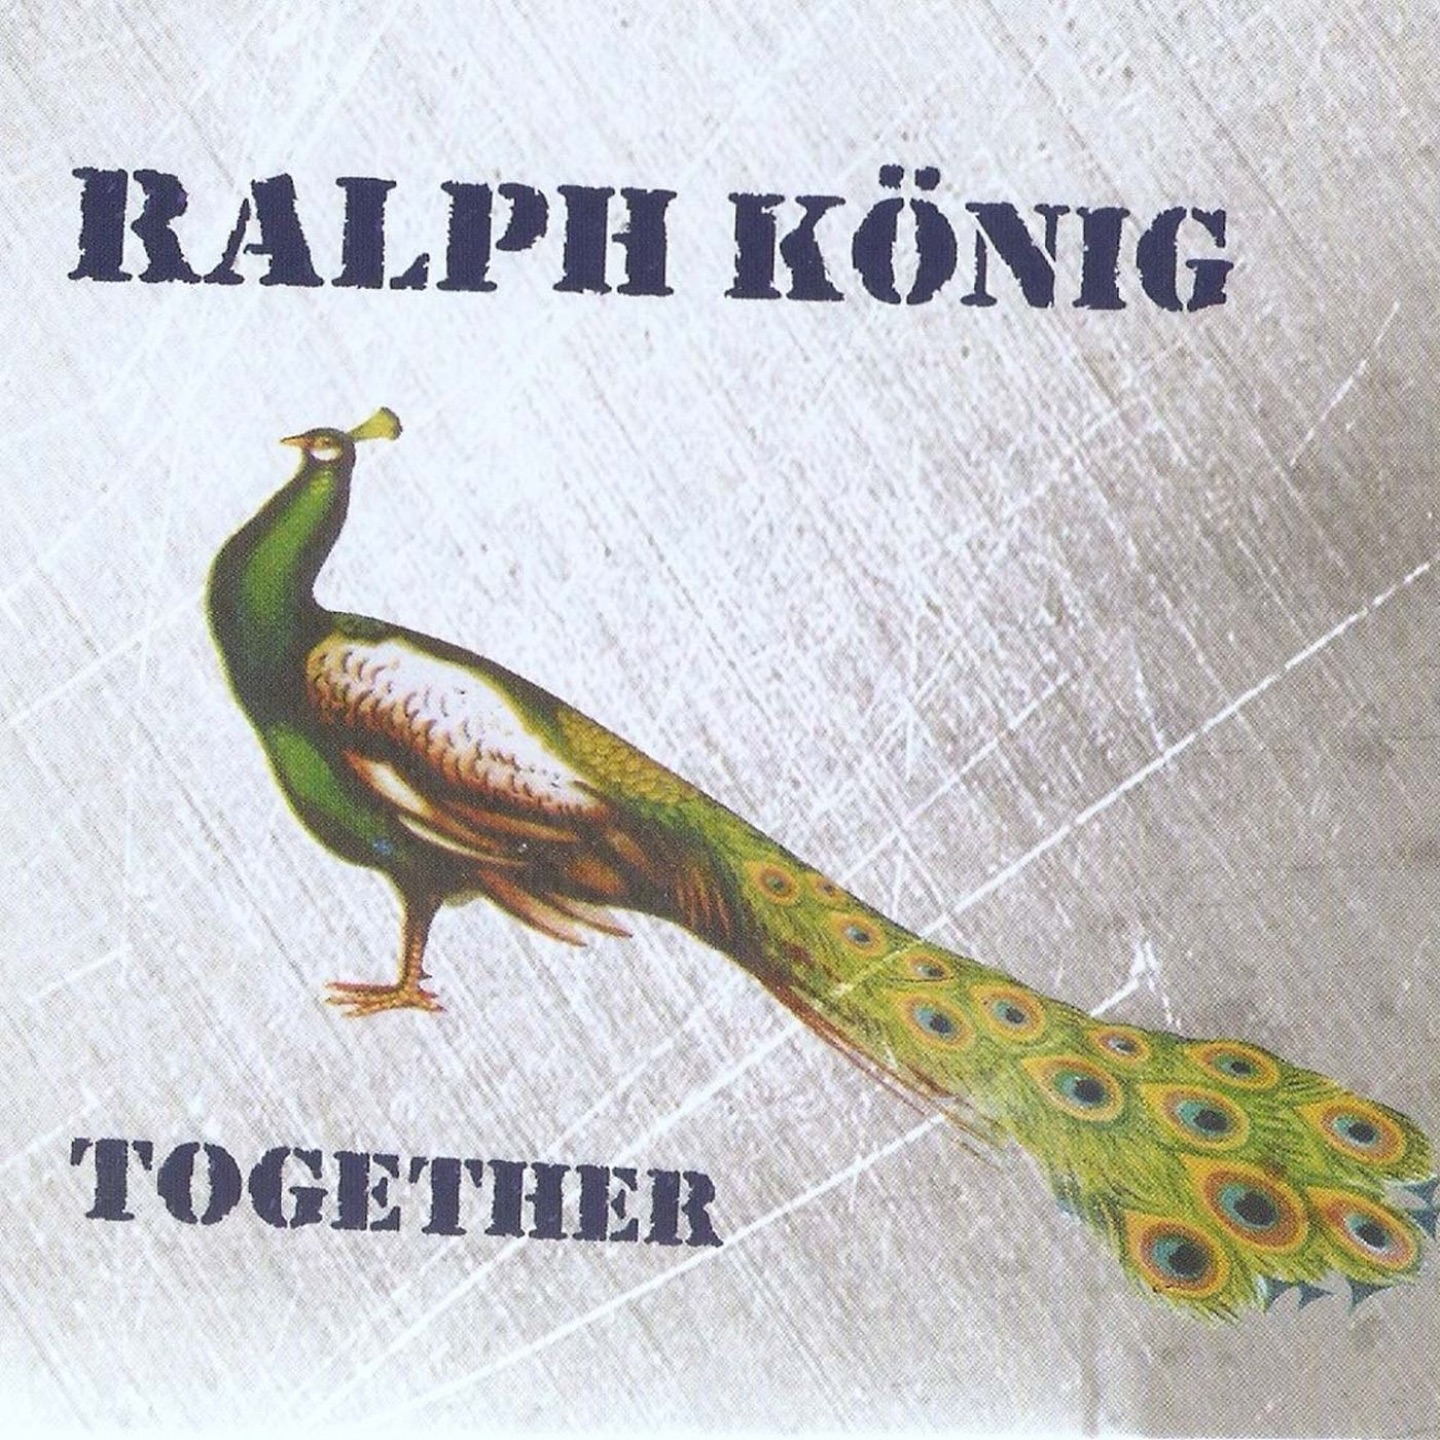 MP3 Songs Online:♫ Indian Summer - Ralph König album Together. Jazz,Music listen to music online free without downloading.